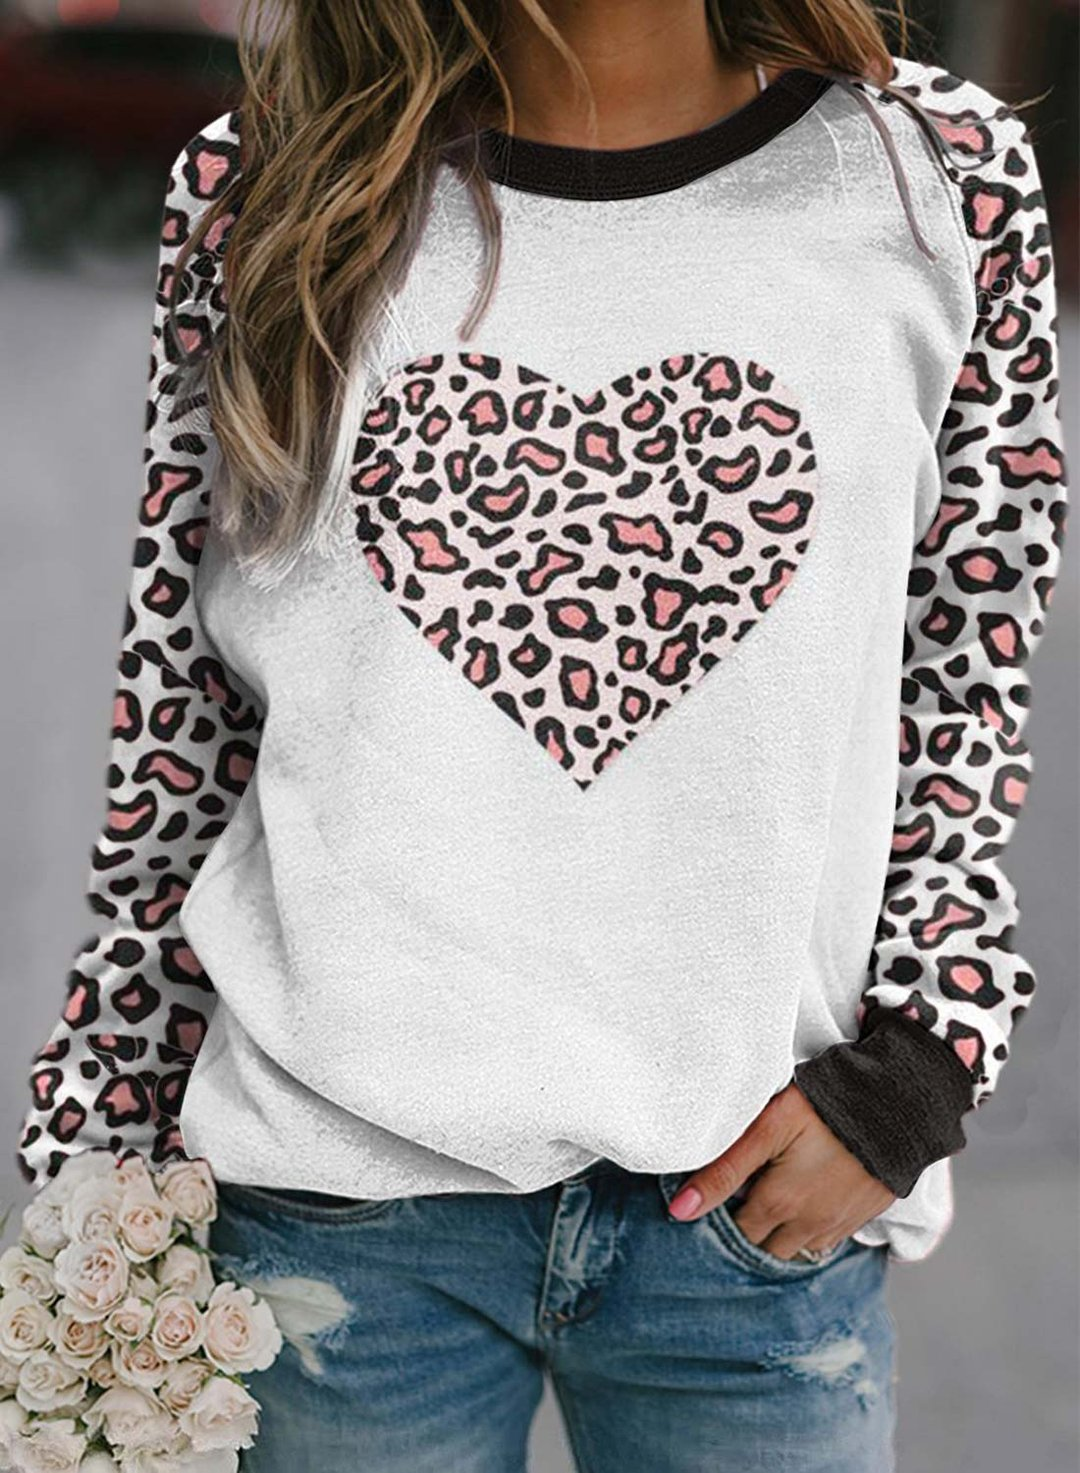 Leopard Women's Pullovers Leopard Color Block Heart-shaped Round Neck Long Sleeve Casual Pullovers LC2516303-20